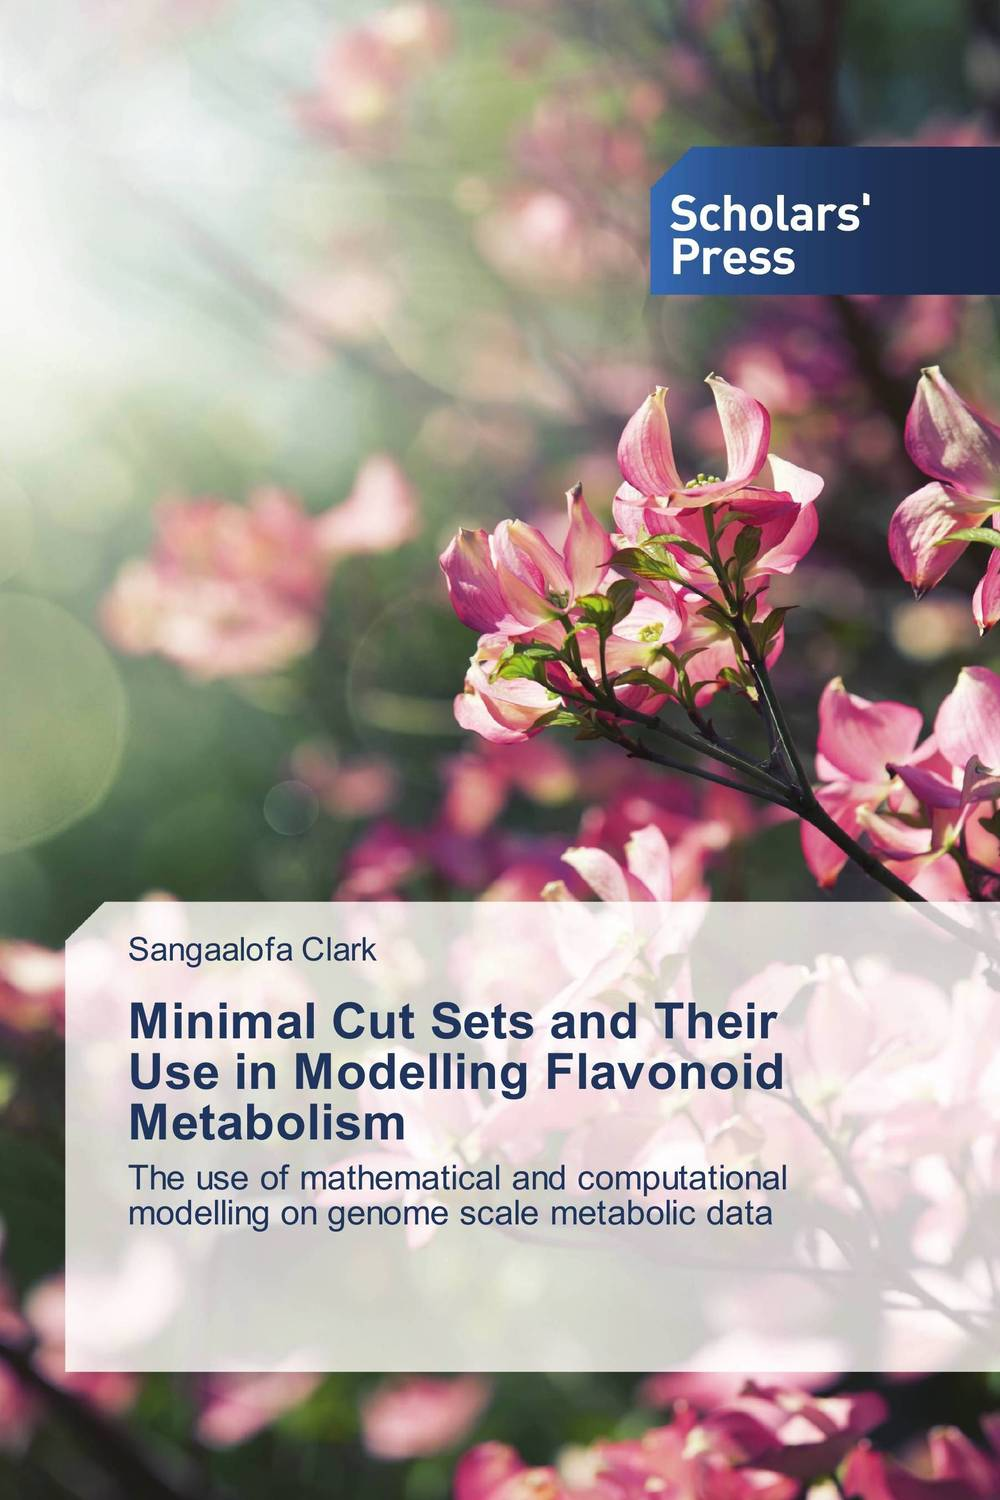 Minimal Cut Sets and Their Use in Modelling Flavonoid Metabolism seeing things as they are